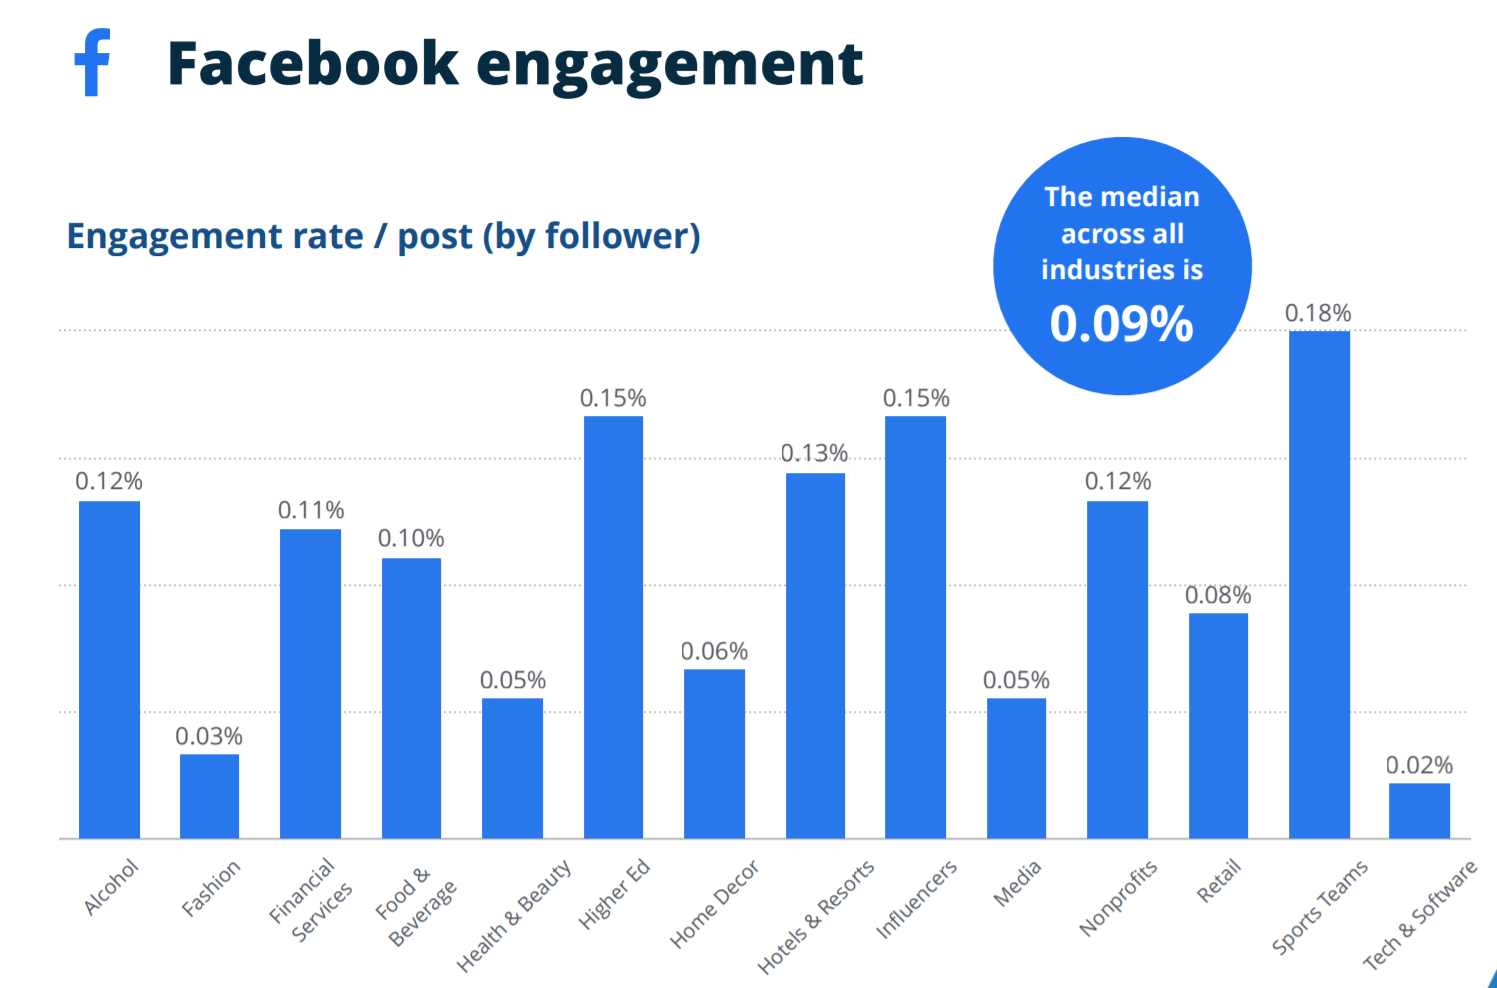 Engagement rate for a Facebook post